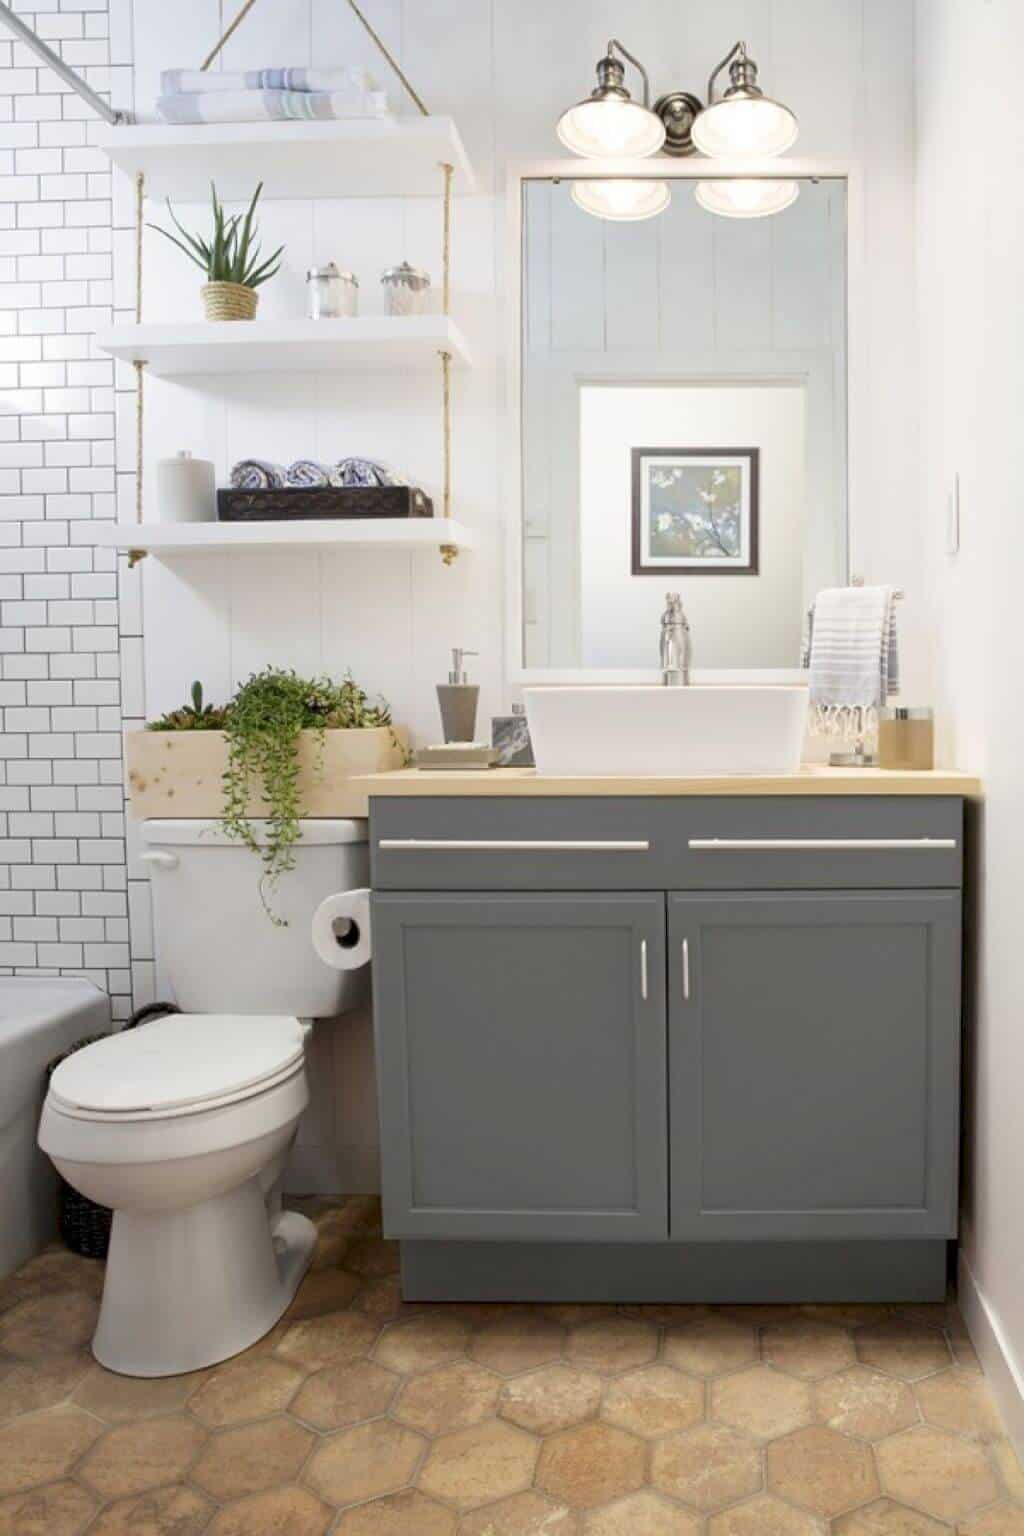 32 Ideas of Bathroom Remodels for Small Spaces You'll Want ... on Bathroom Ideas Small  id=67879